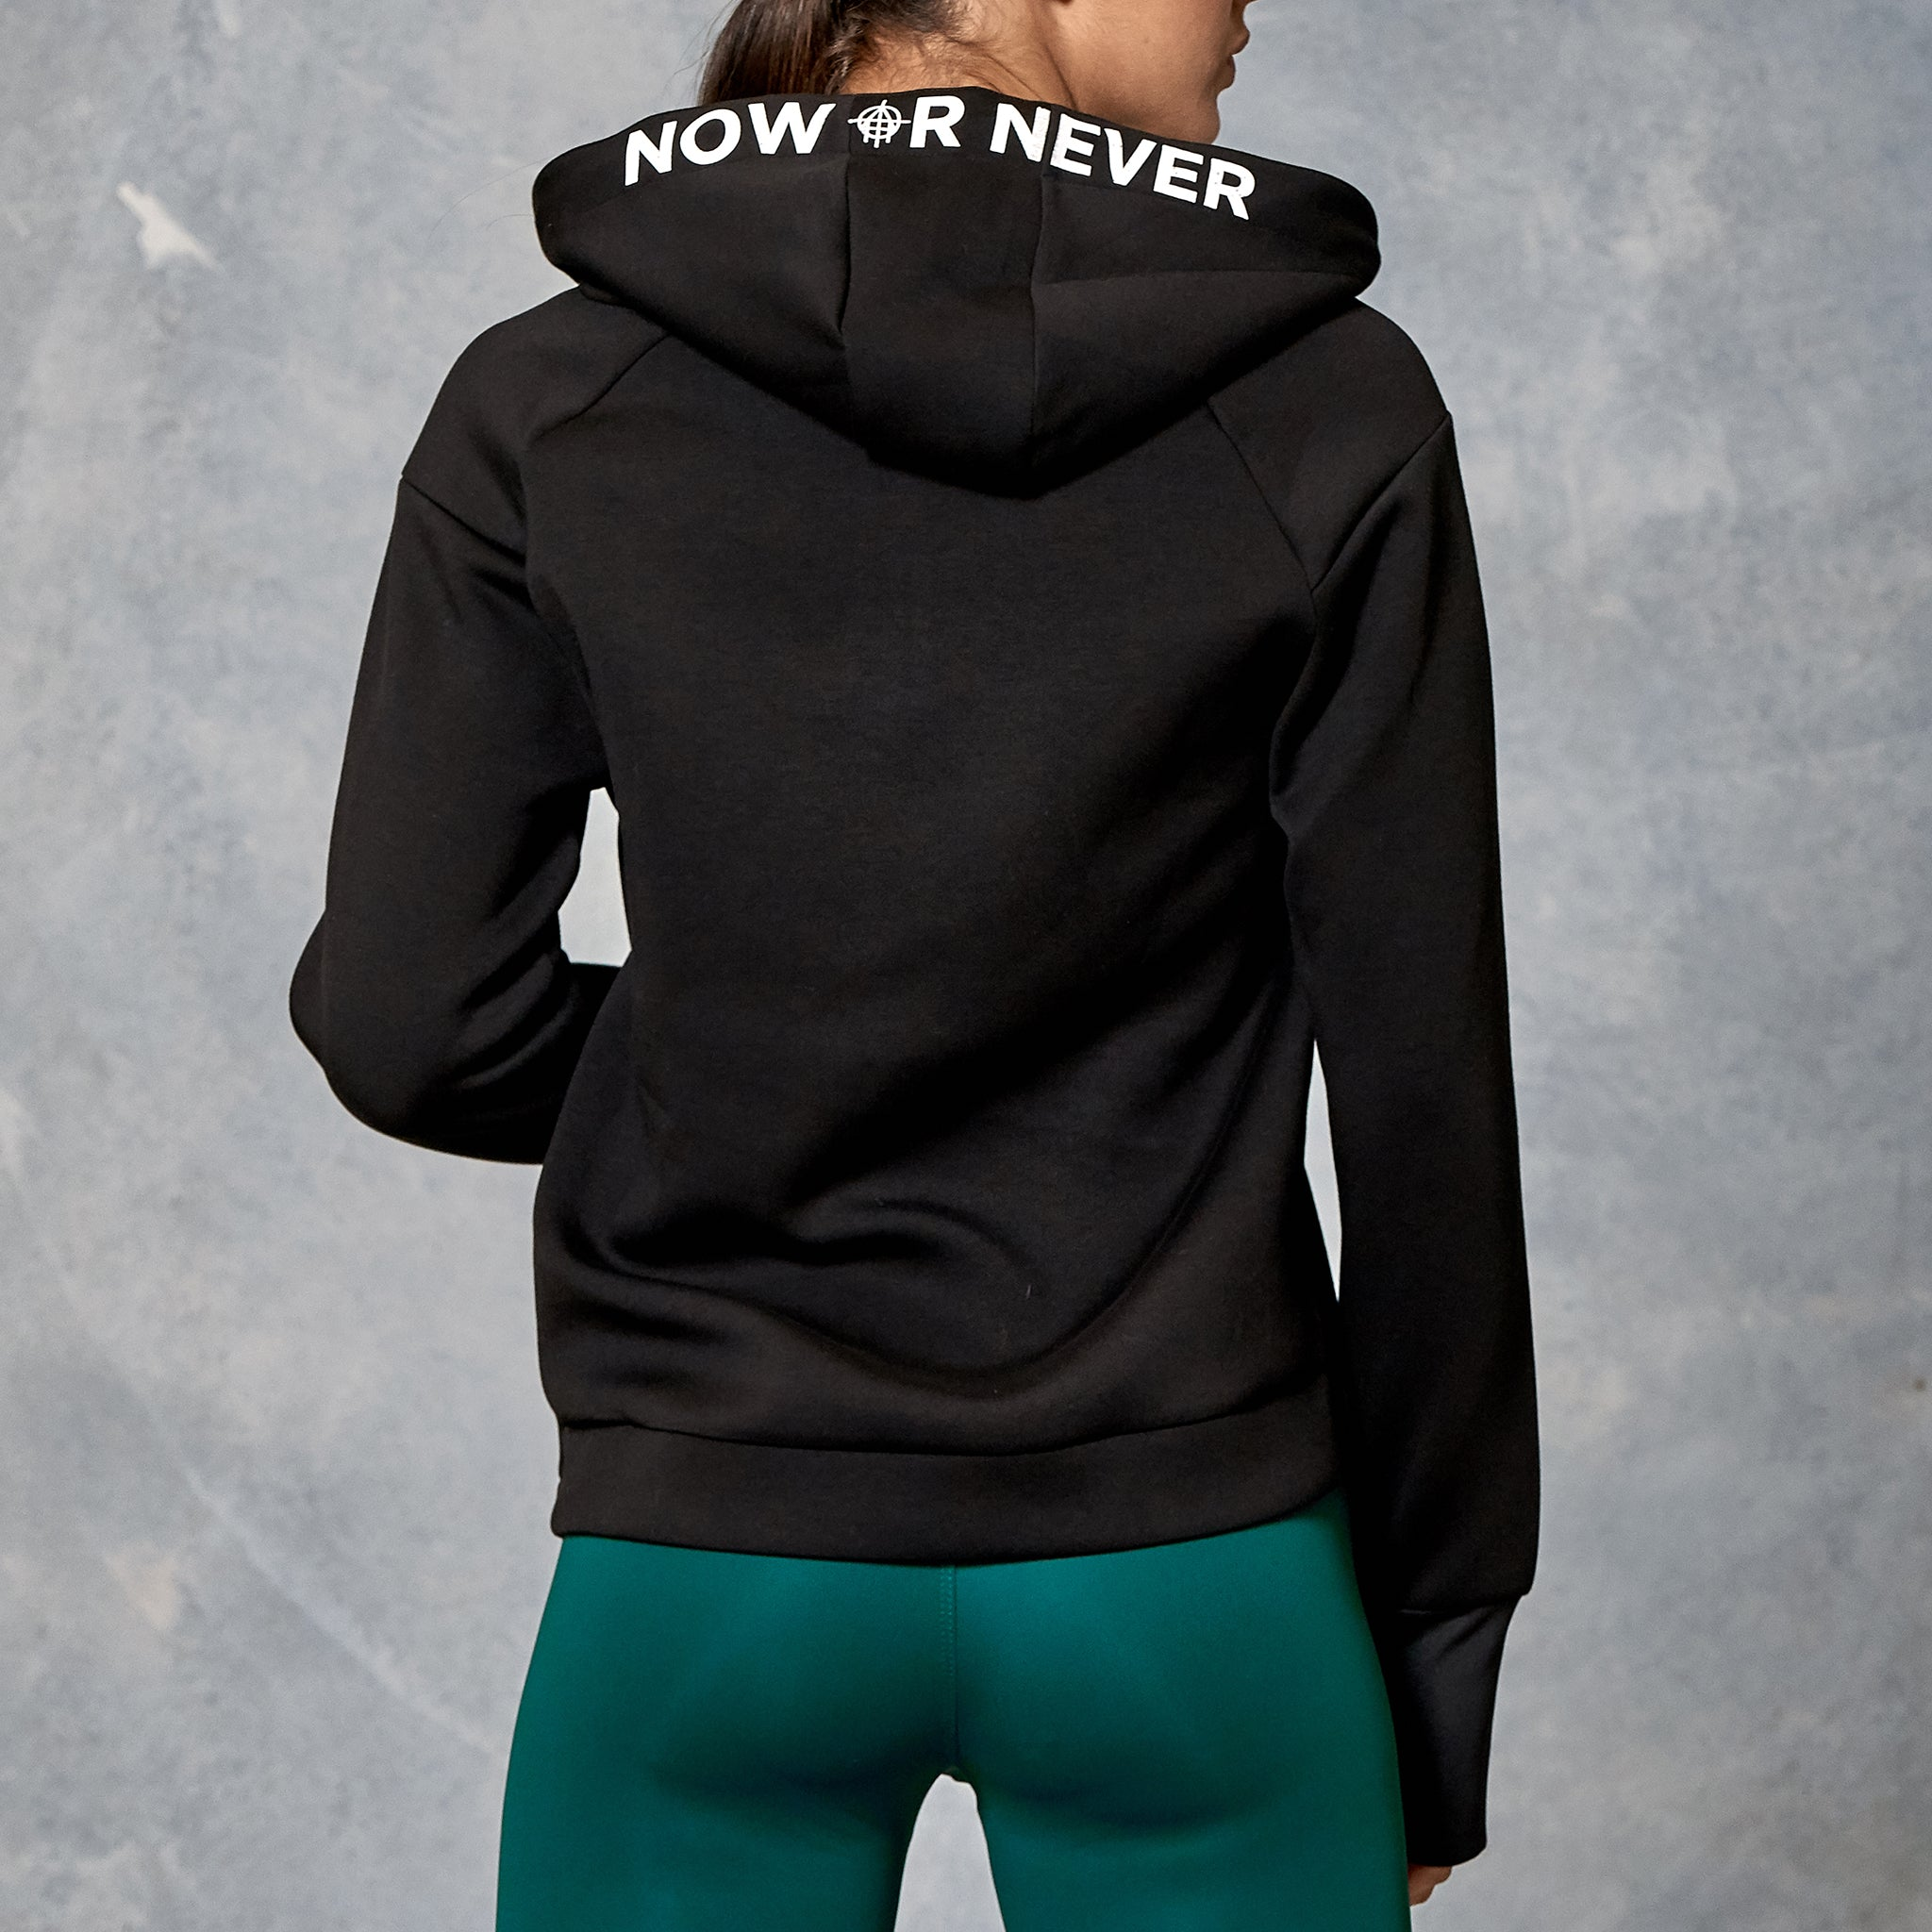 UNFINISHED BUSINESS WOMEN'S SCUBA NECK HOODIE